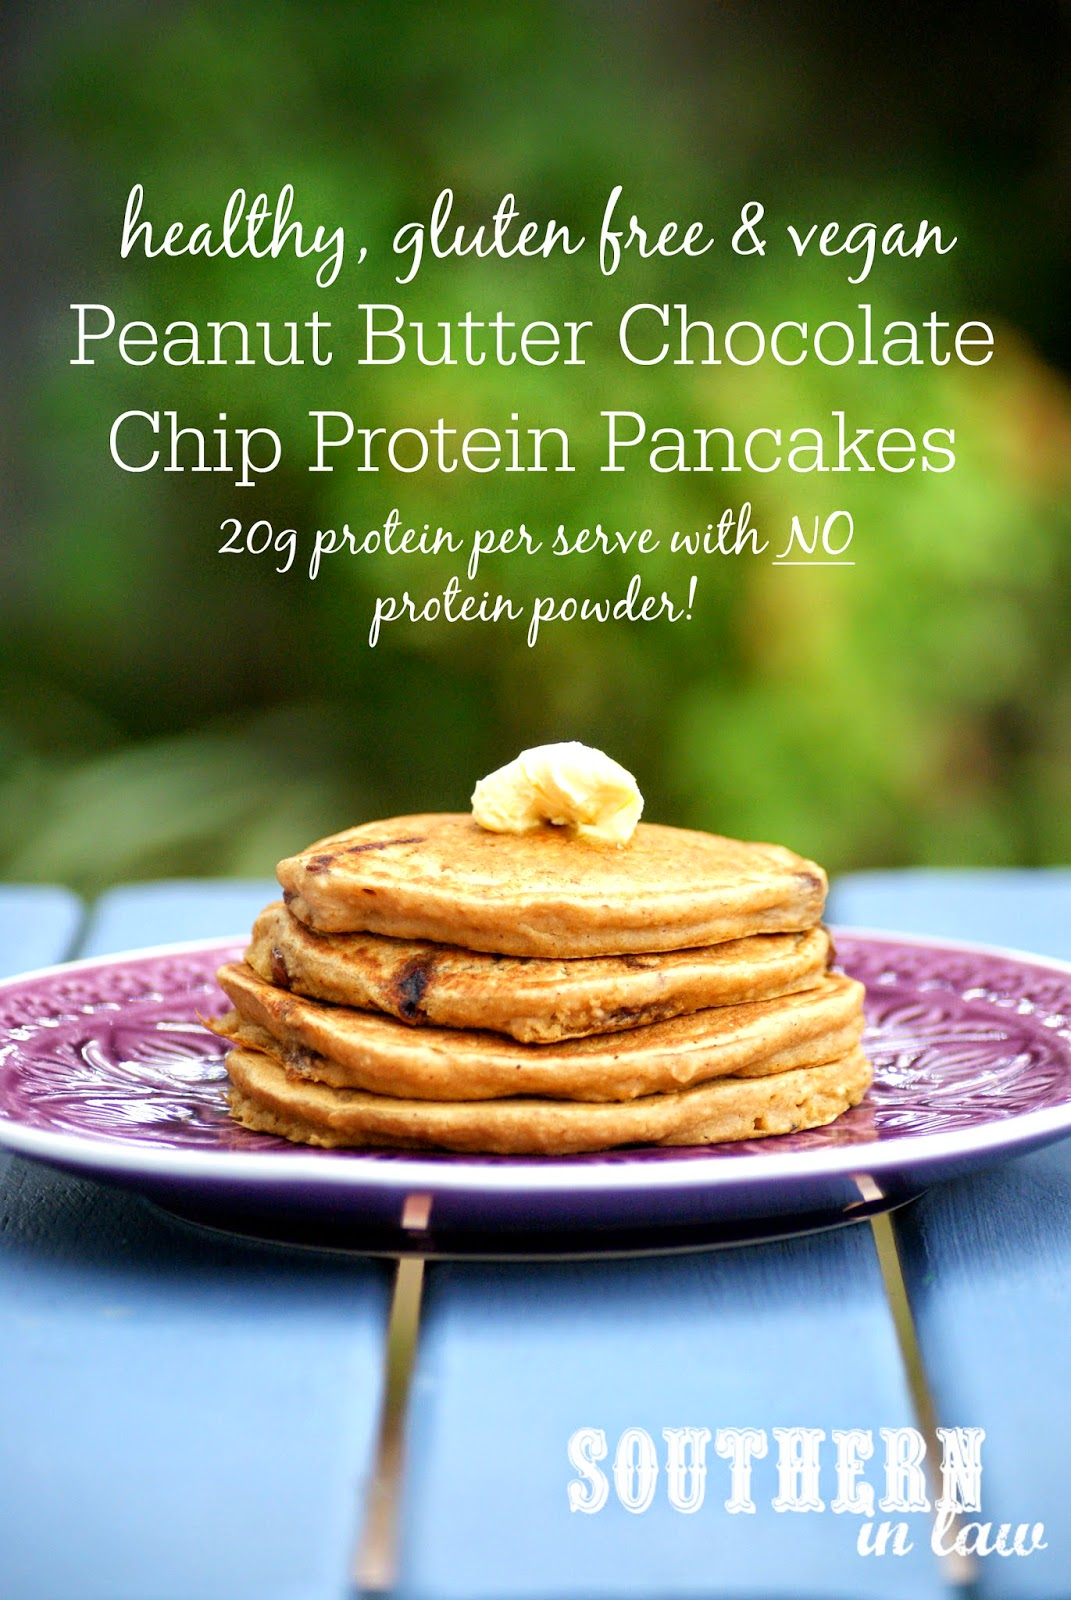 Healthy Peanut Butter Chocolate Chip Protein Pancake Recipe Without Protein Powder - gluten free, vegan, clean eating friendly, sugar free, gluten free, healthy, egg free, dairy free